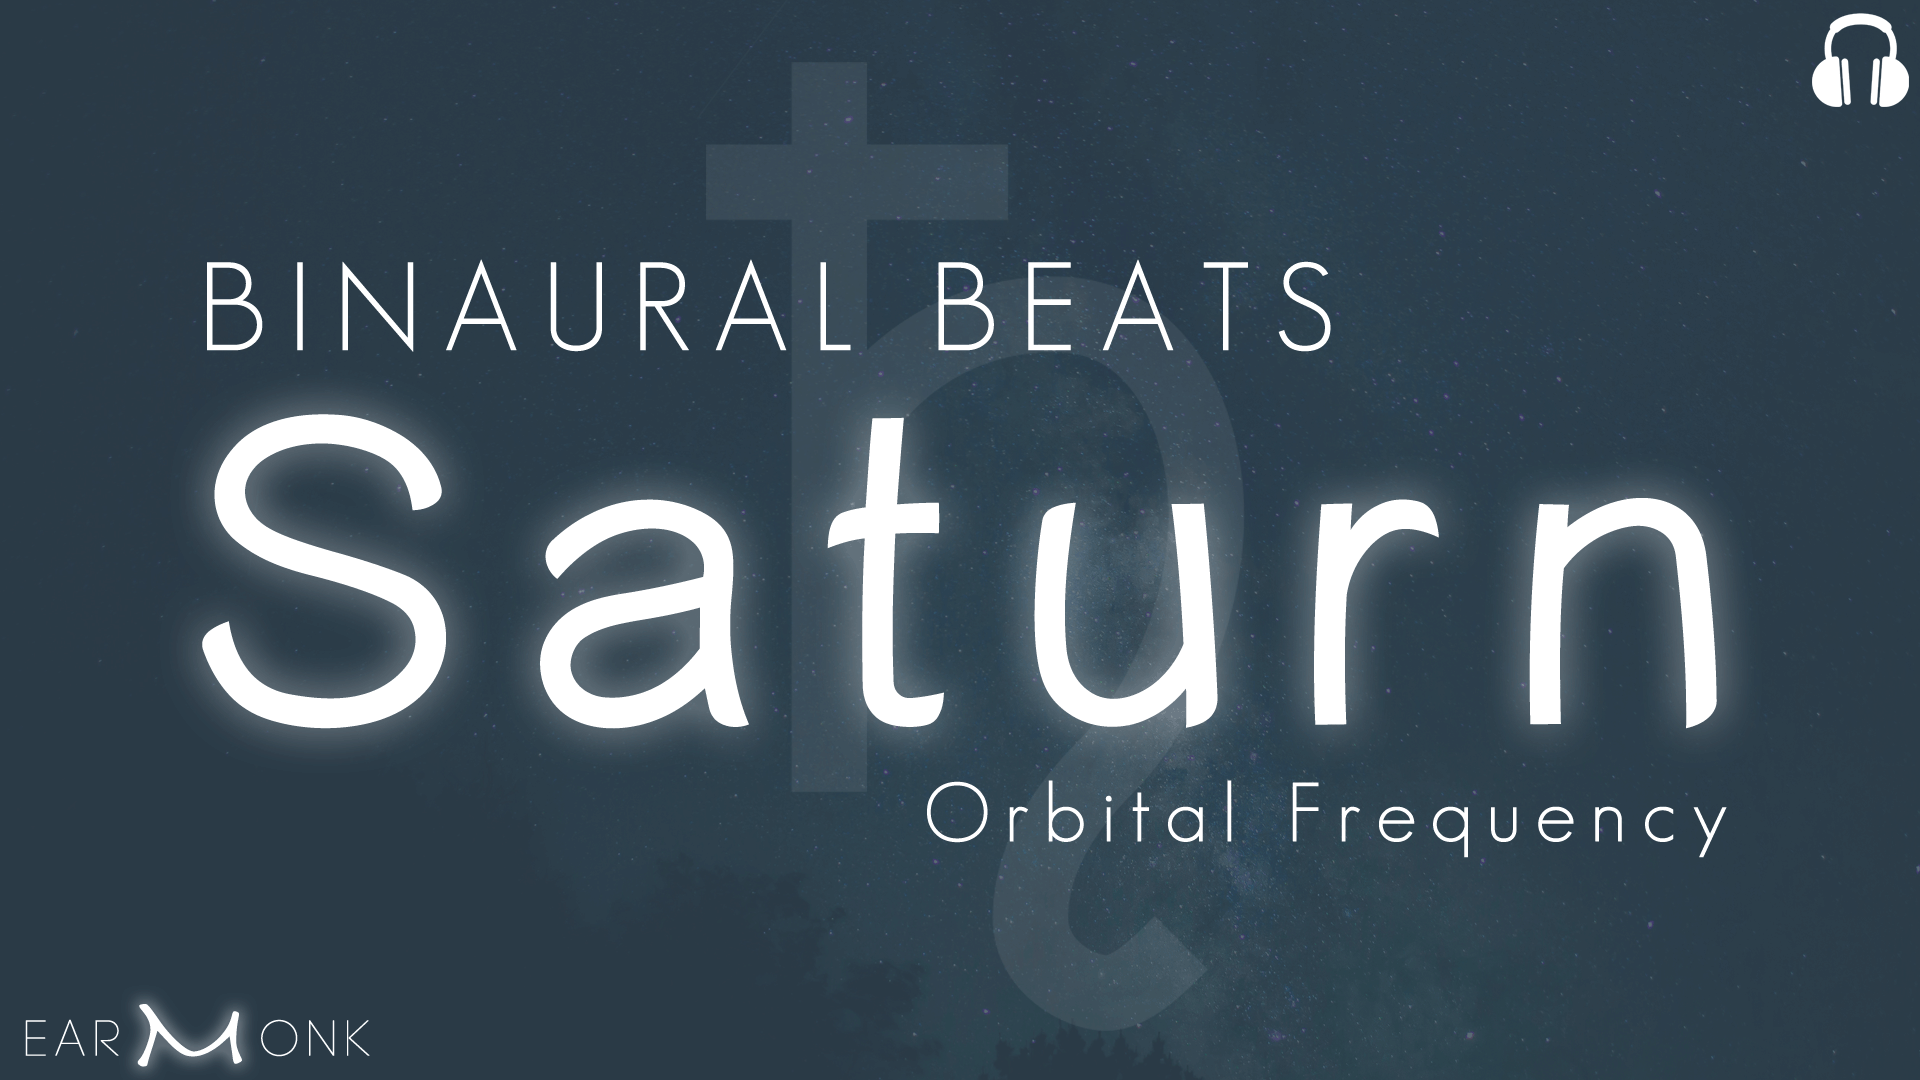 binaural beats saturn frequency